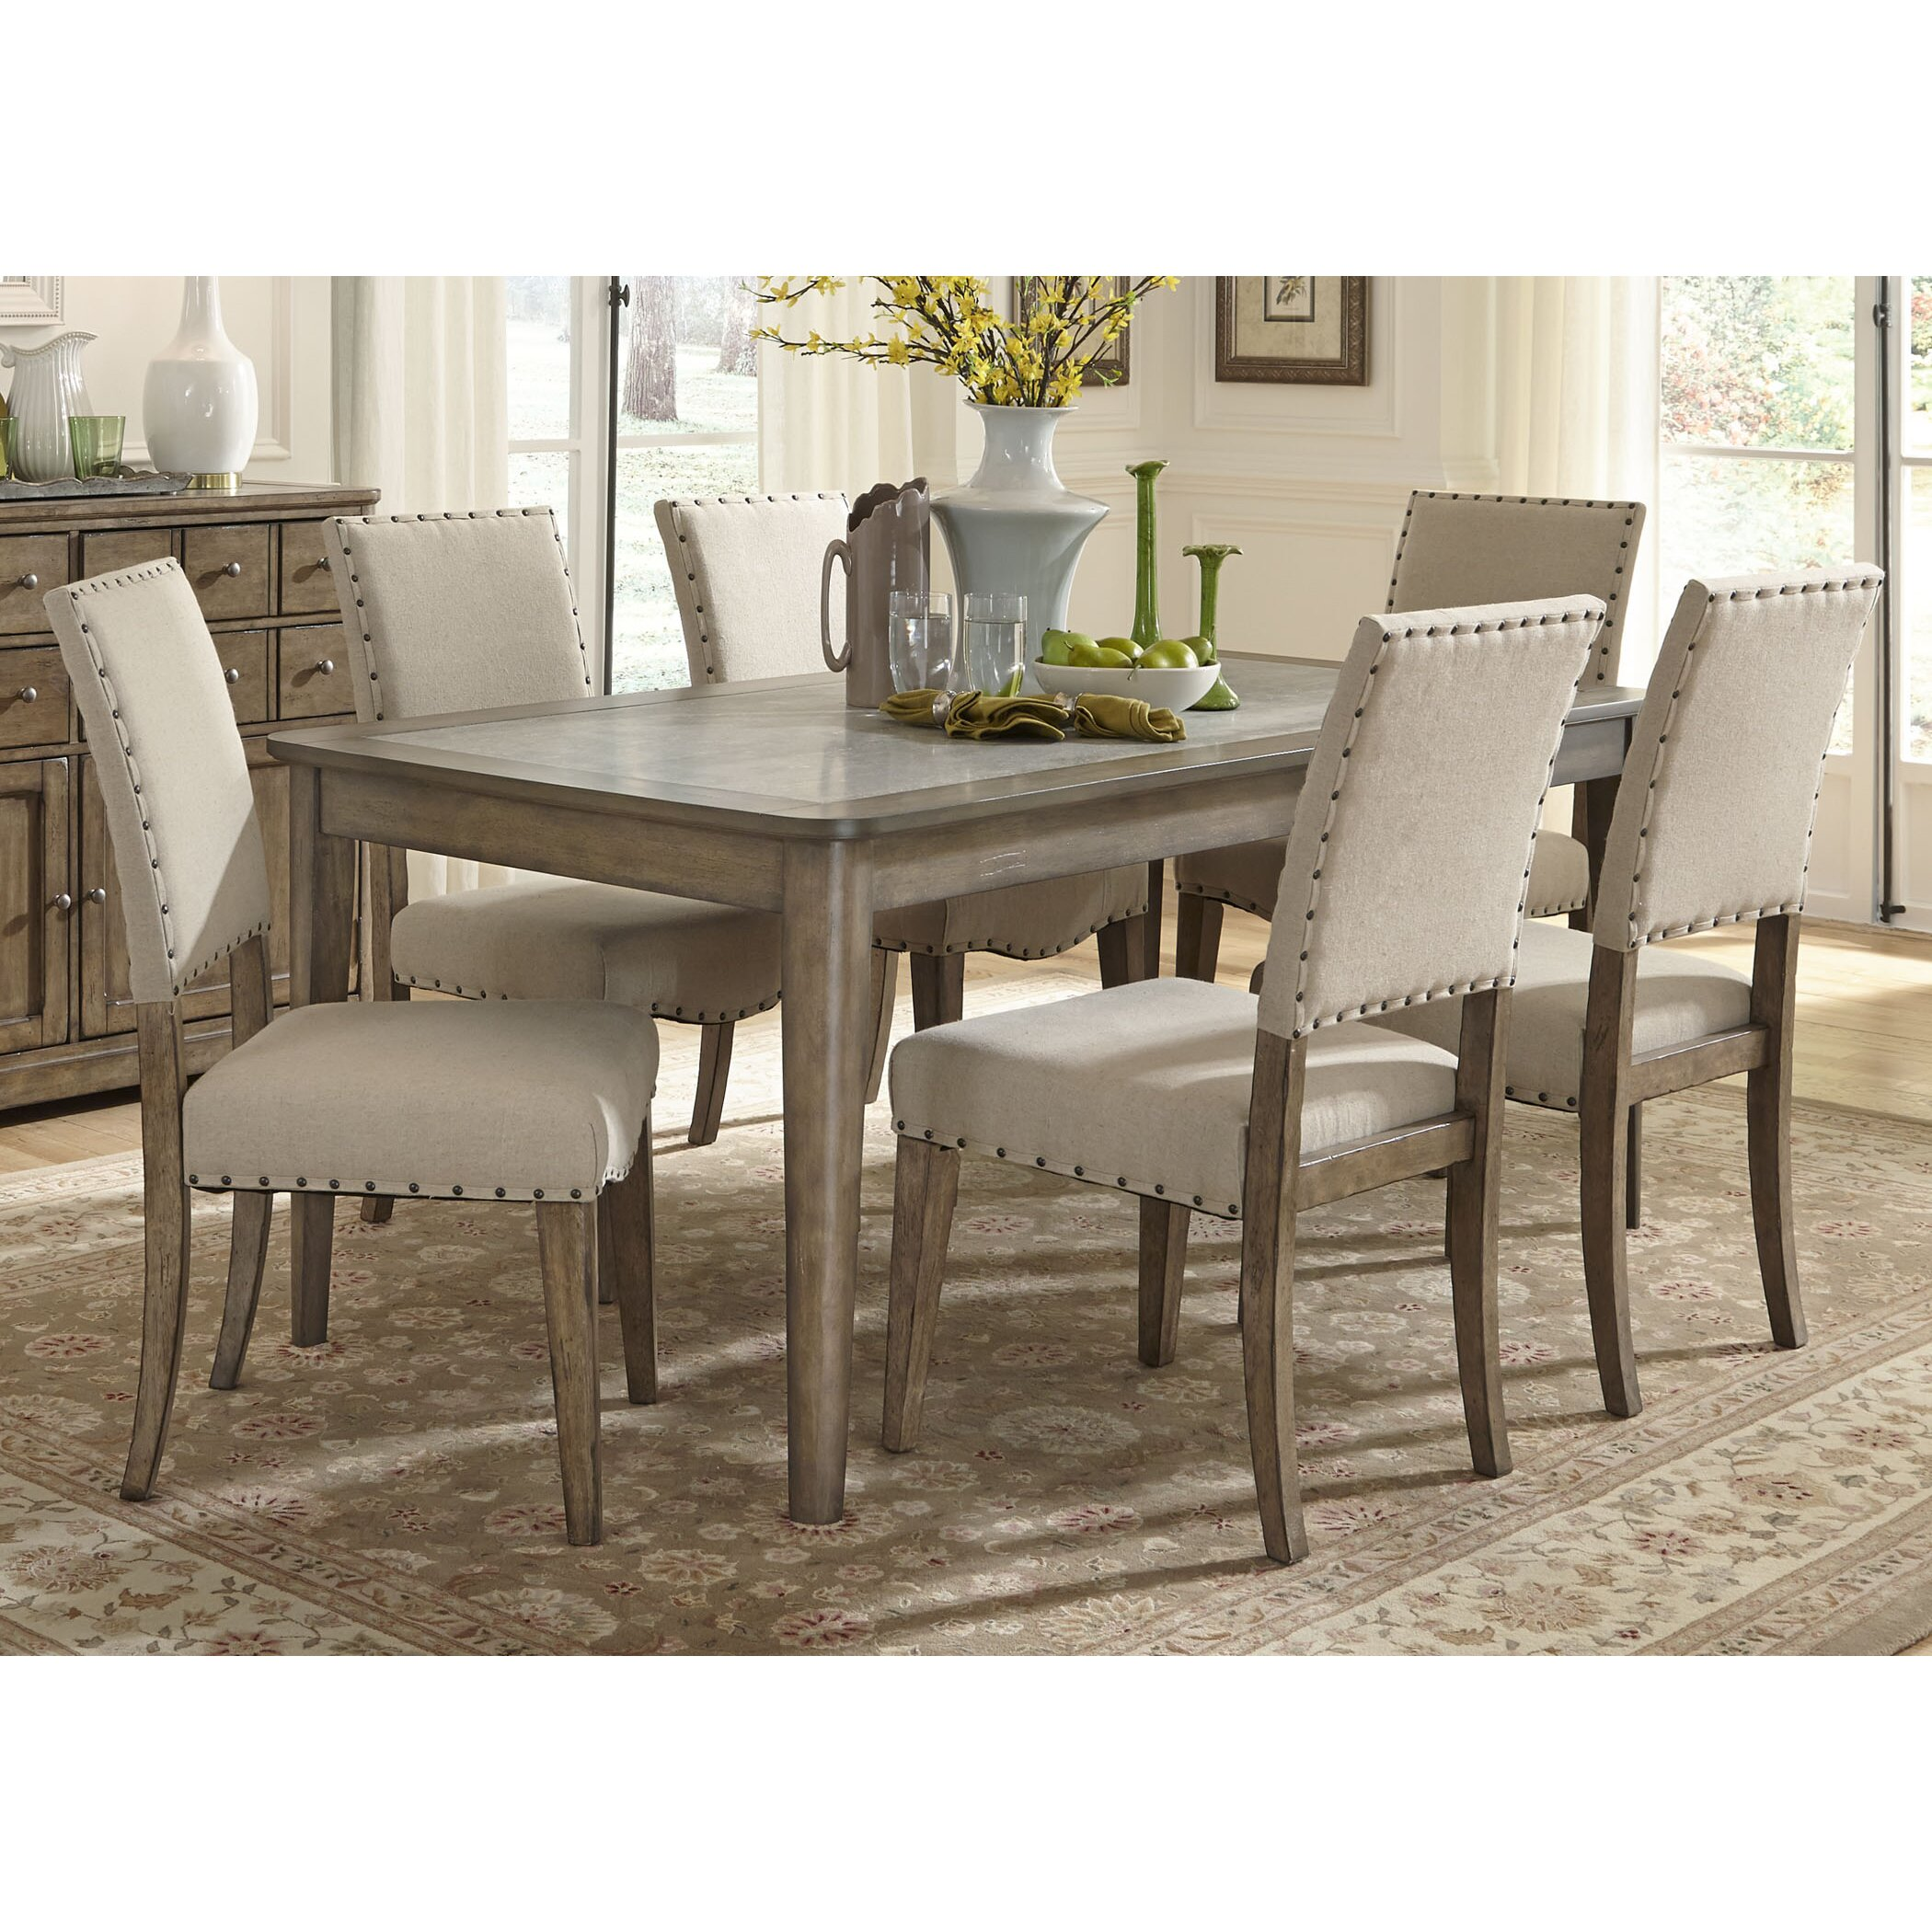 Liberty furniture 7 piece dining set reviews wayfair for 7 piece dining set